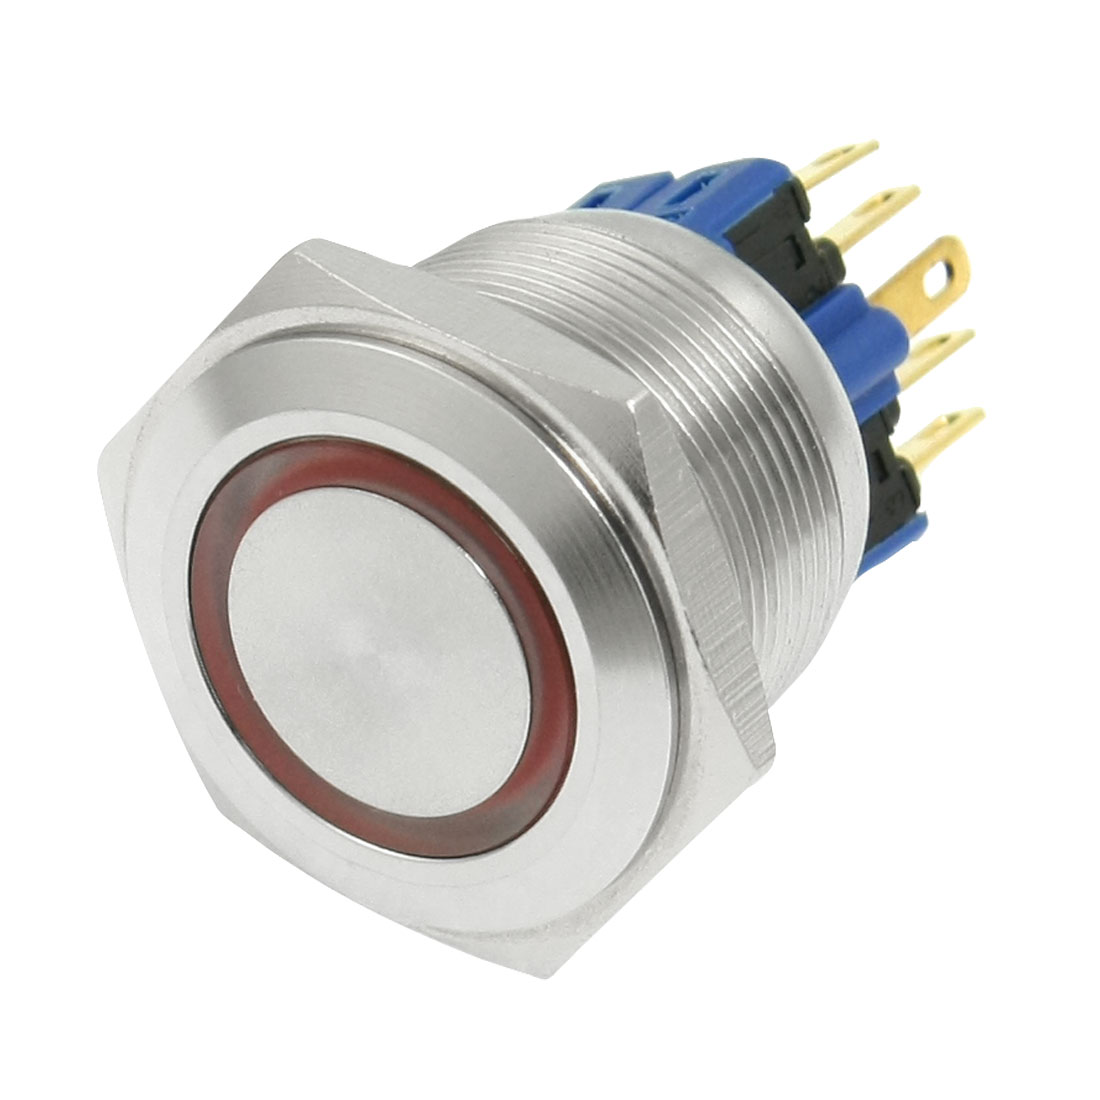 12V Red LED Momentary Stainless Push Button Switch 1 NO 1 NC